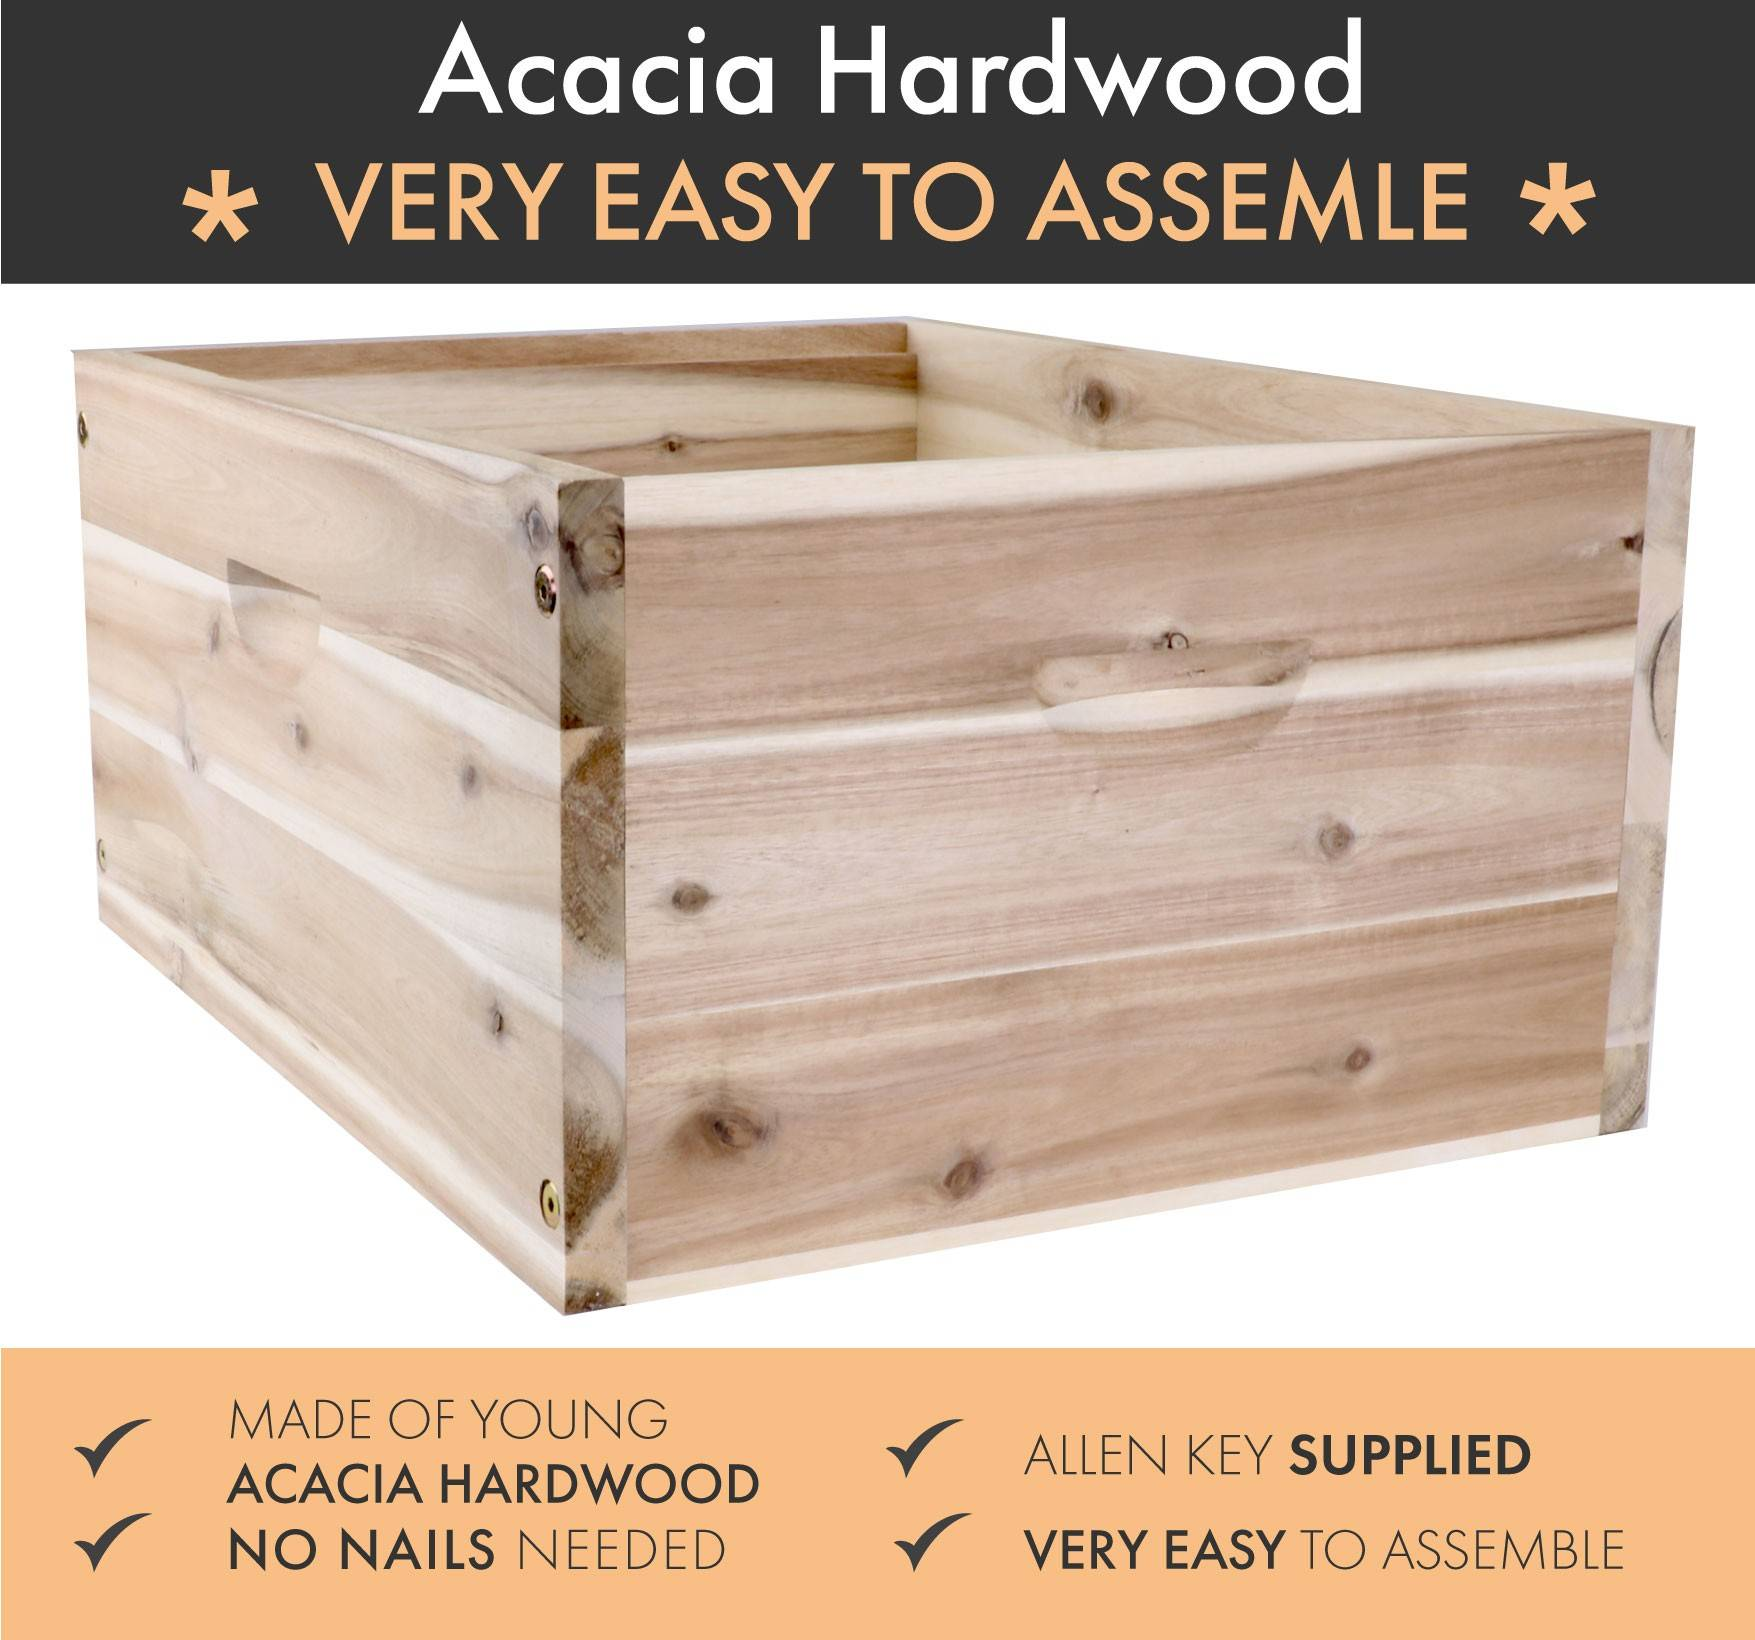 Full Depth 10 Frame acacia Hardwood Supers -EASY ASSEMBLE - Whitehouse Beekeeping